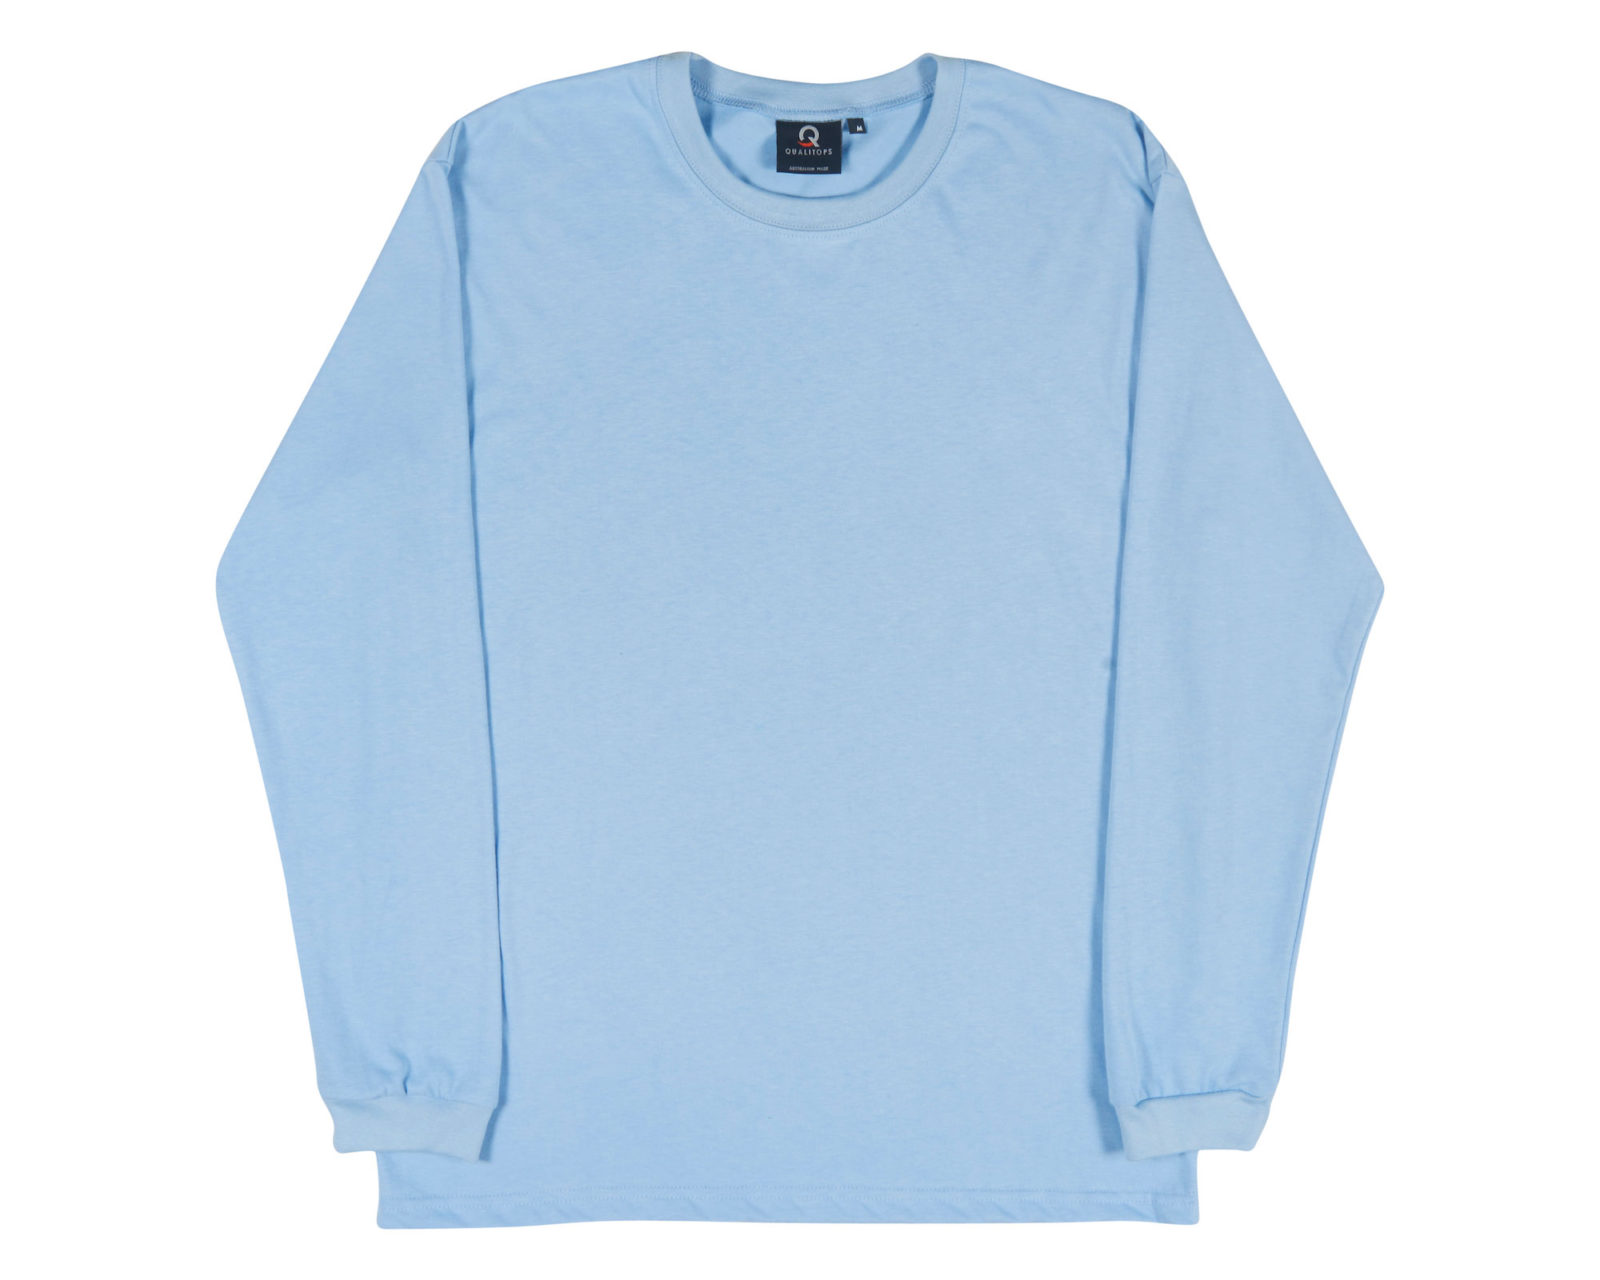 Qualitops Mens Long Sleeve Classic Tee Australian made